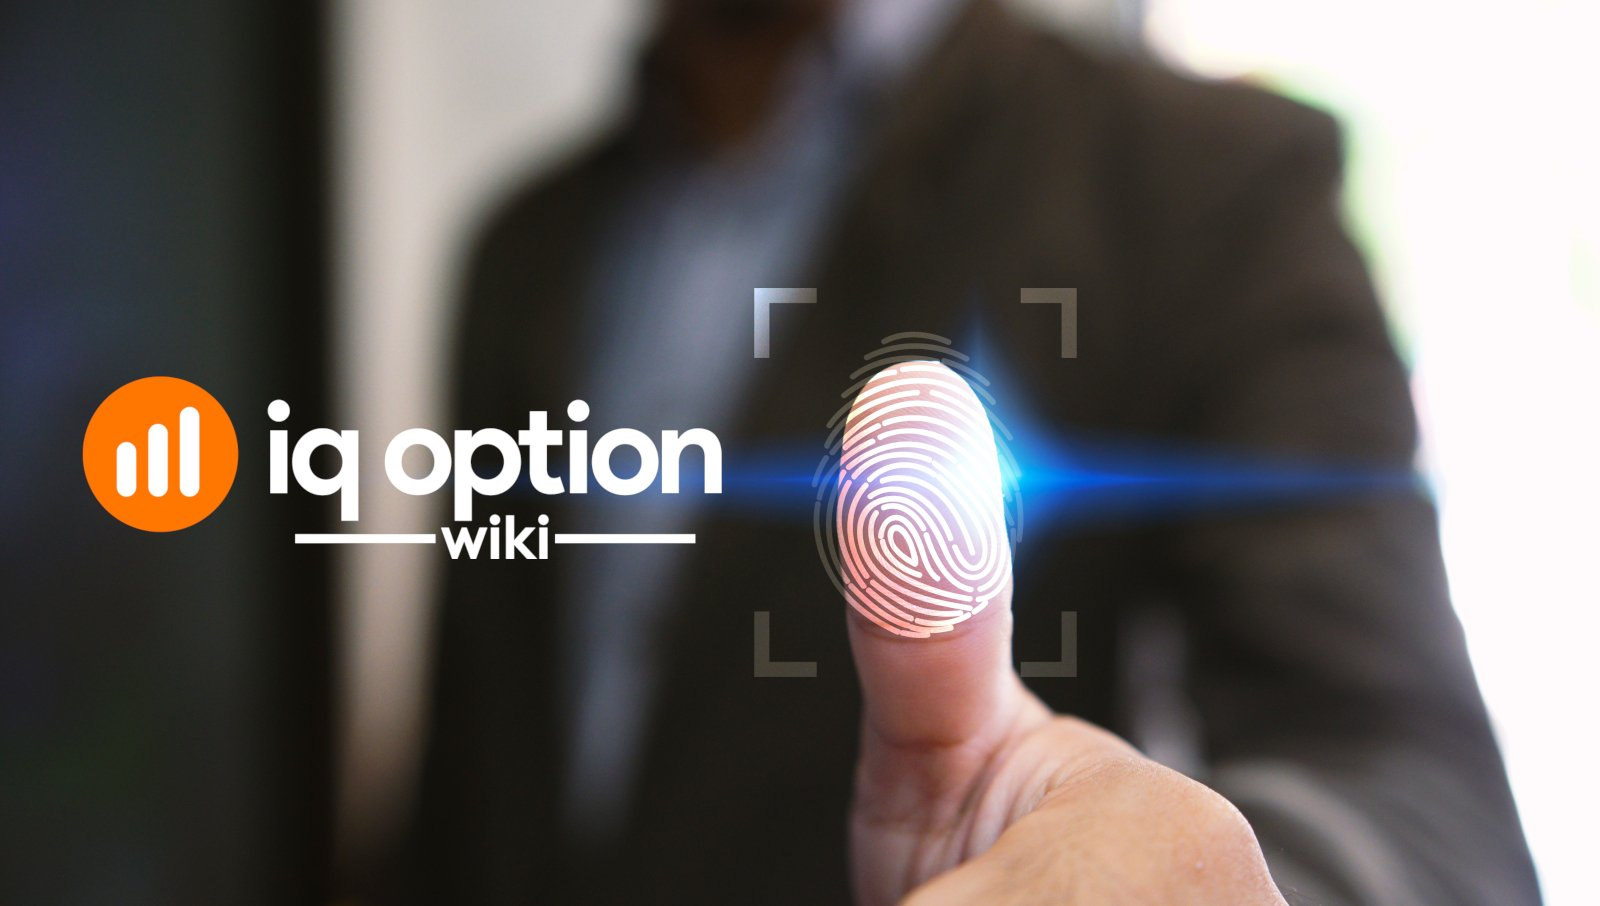 Password recovery at iq option